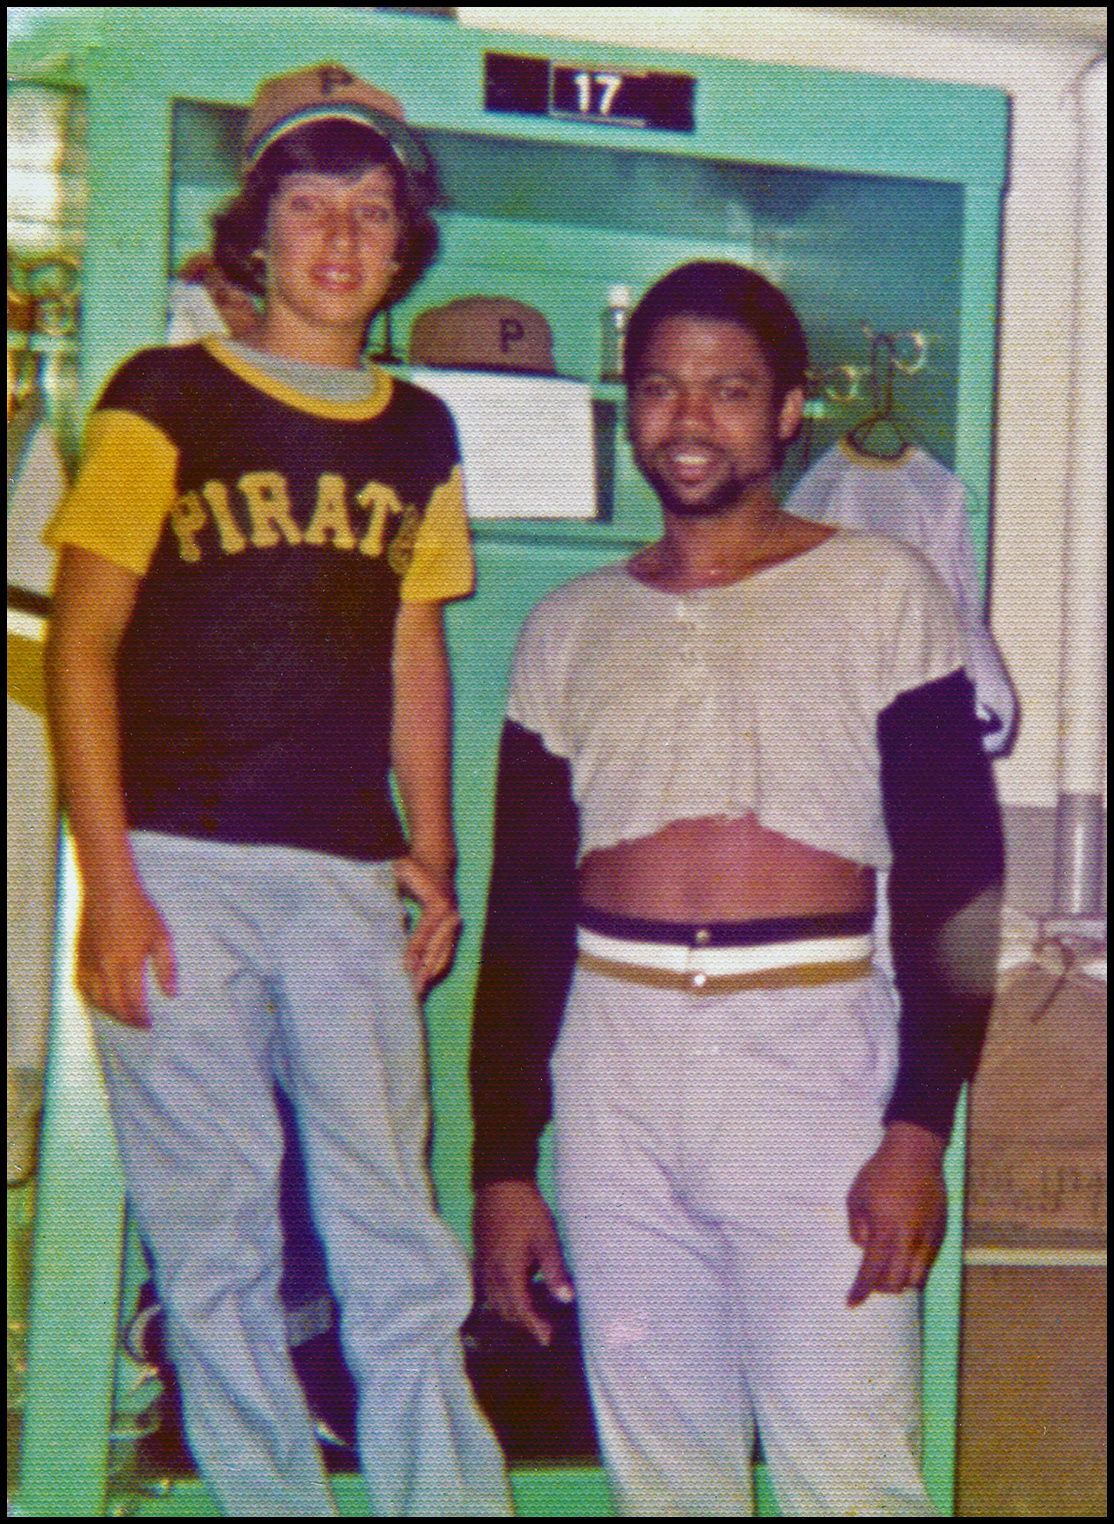 Standing on a bench by inspirational friend and idol, Dock Ellis. Early 70's in the club house locker room at Shea Stadium, NY<br /> photo by Al Oliver